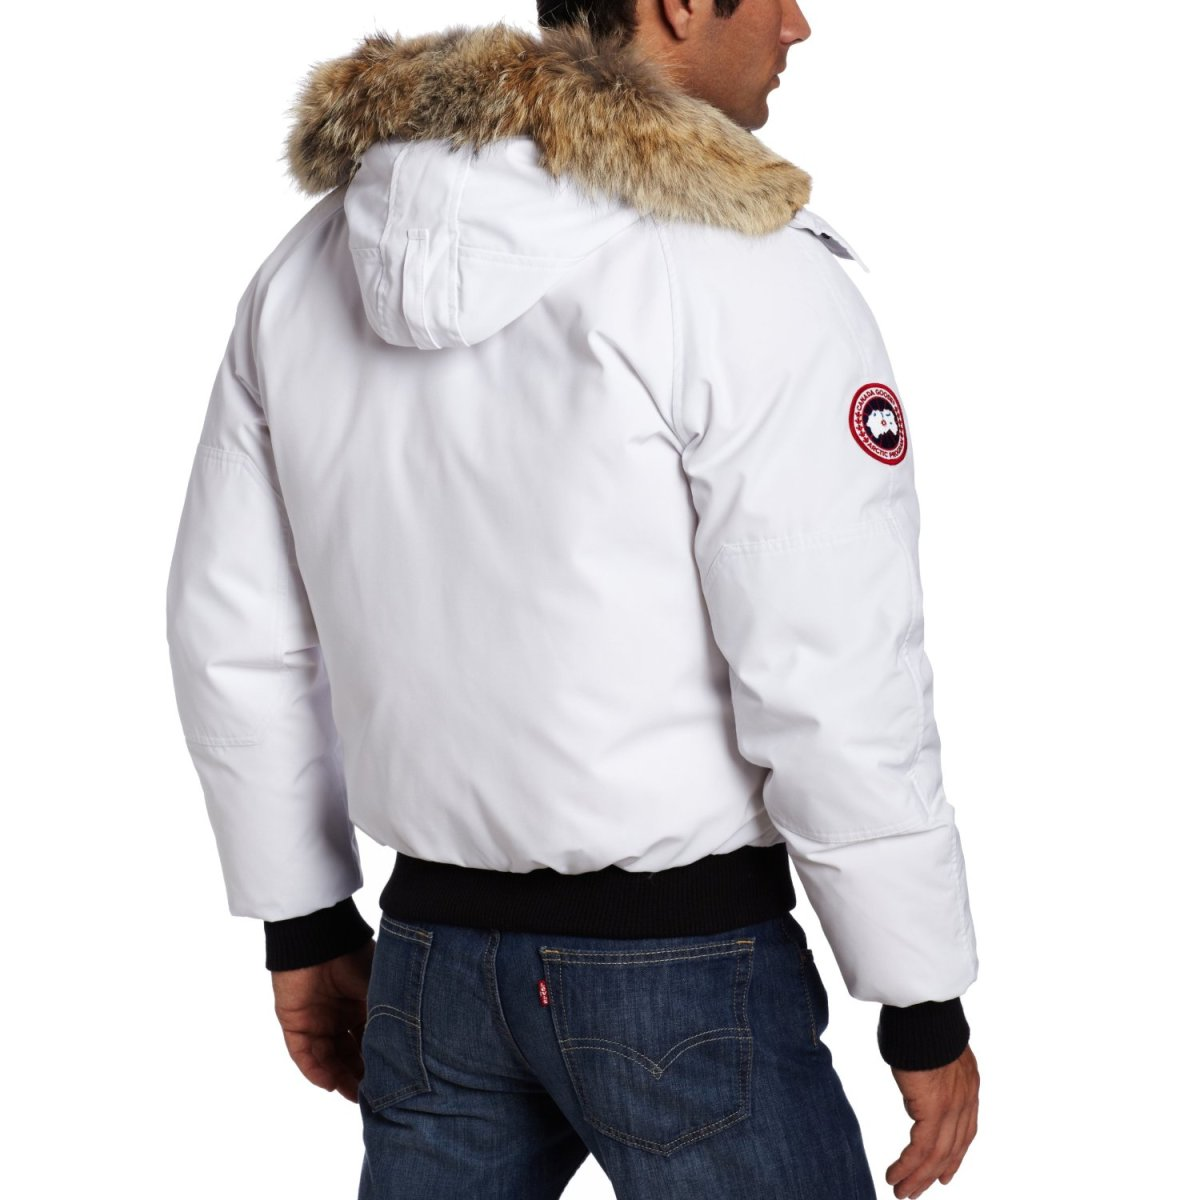 Canada Goose victoria parka online discounts - A Complete Review Of The Chilliwack Bomber Jacket By Canada Goose